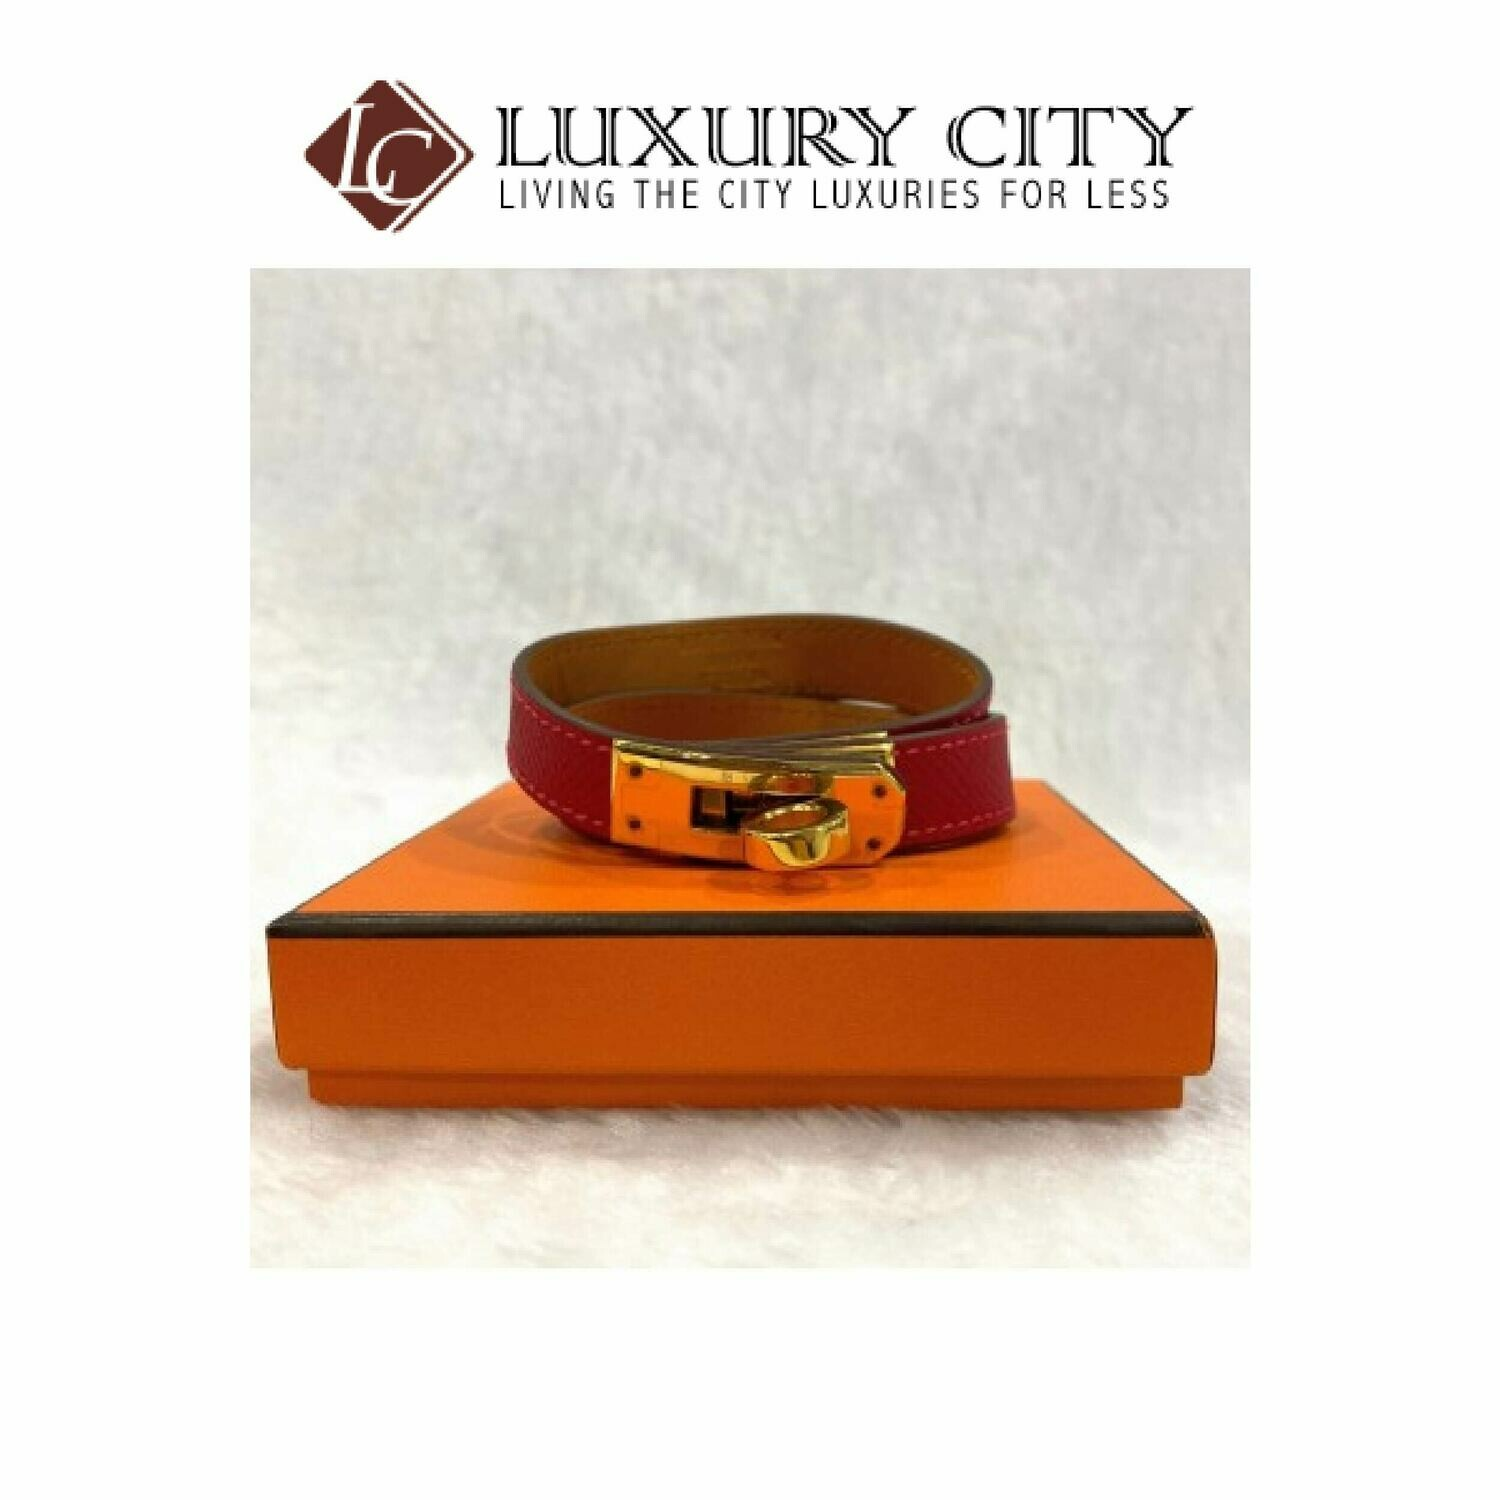 [Luxury City] Preloved Hermes Kelly Double Tour Leather Bracelet